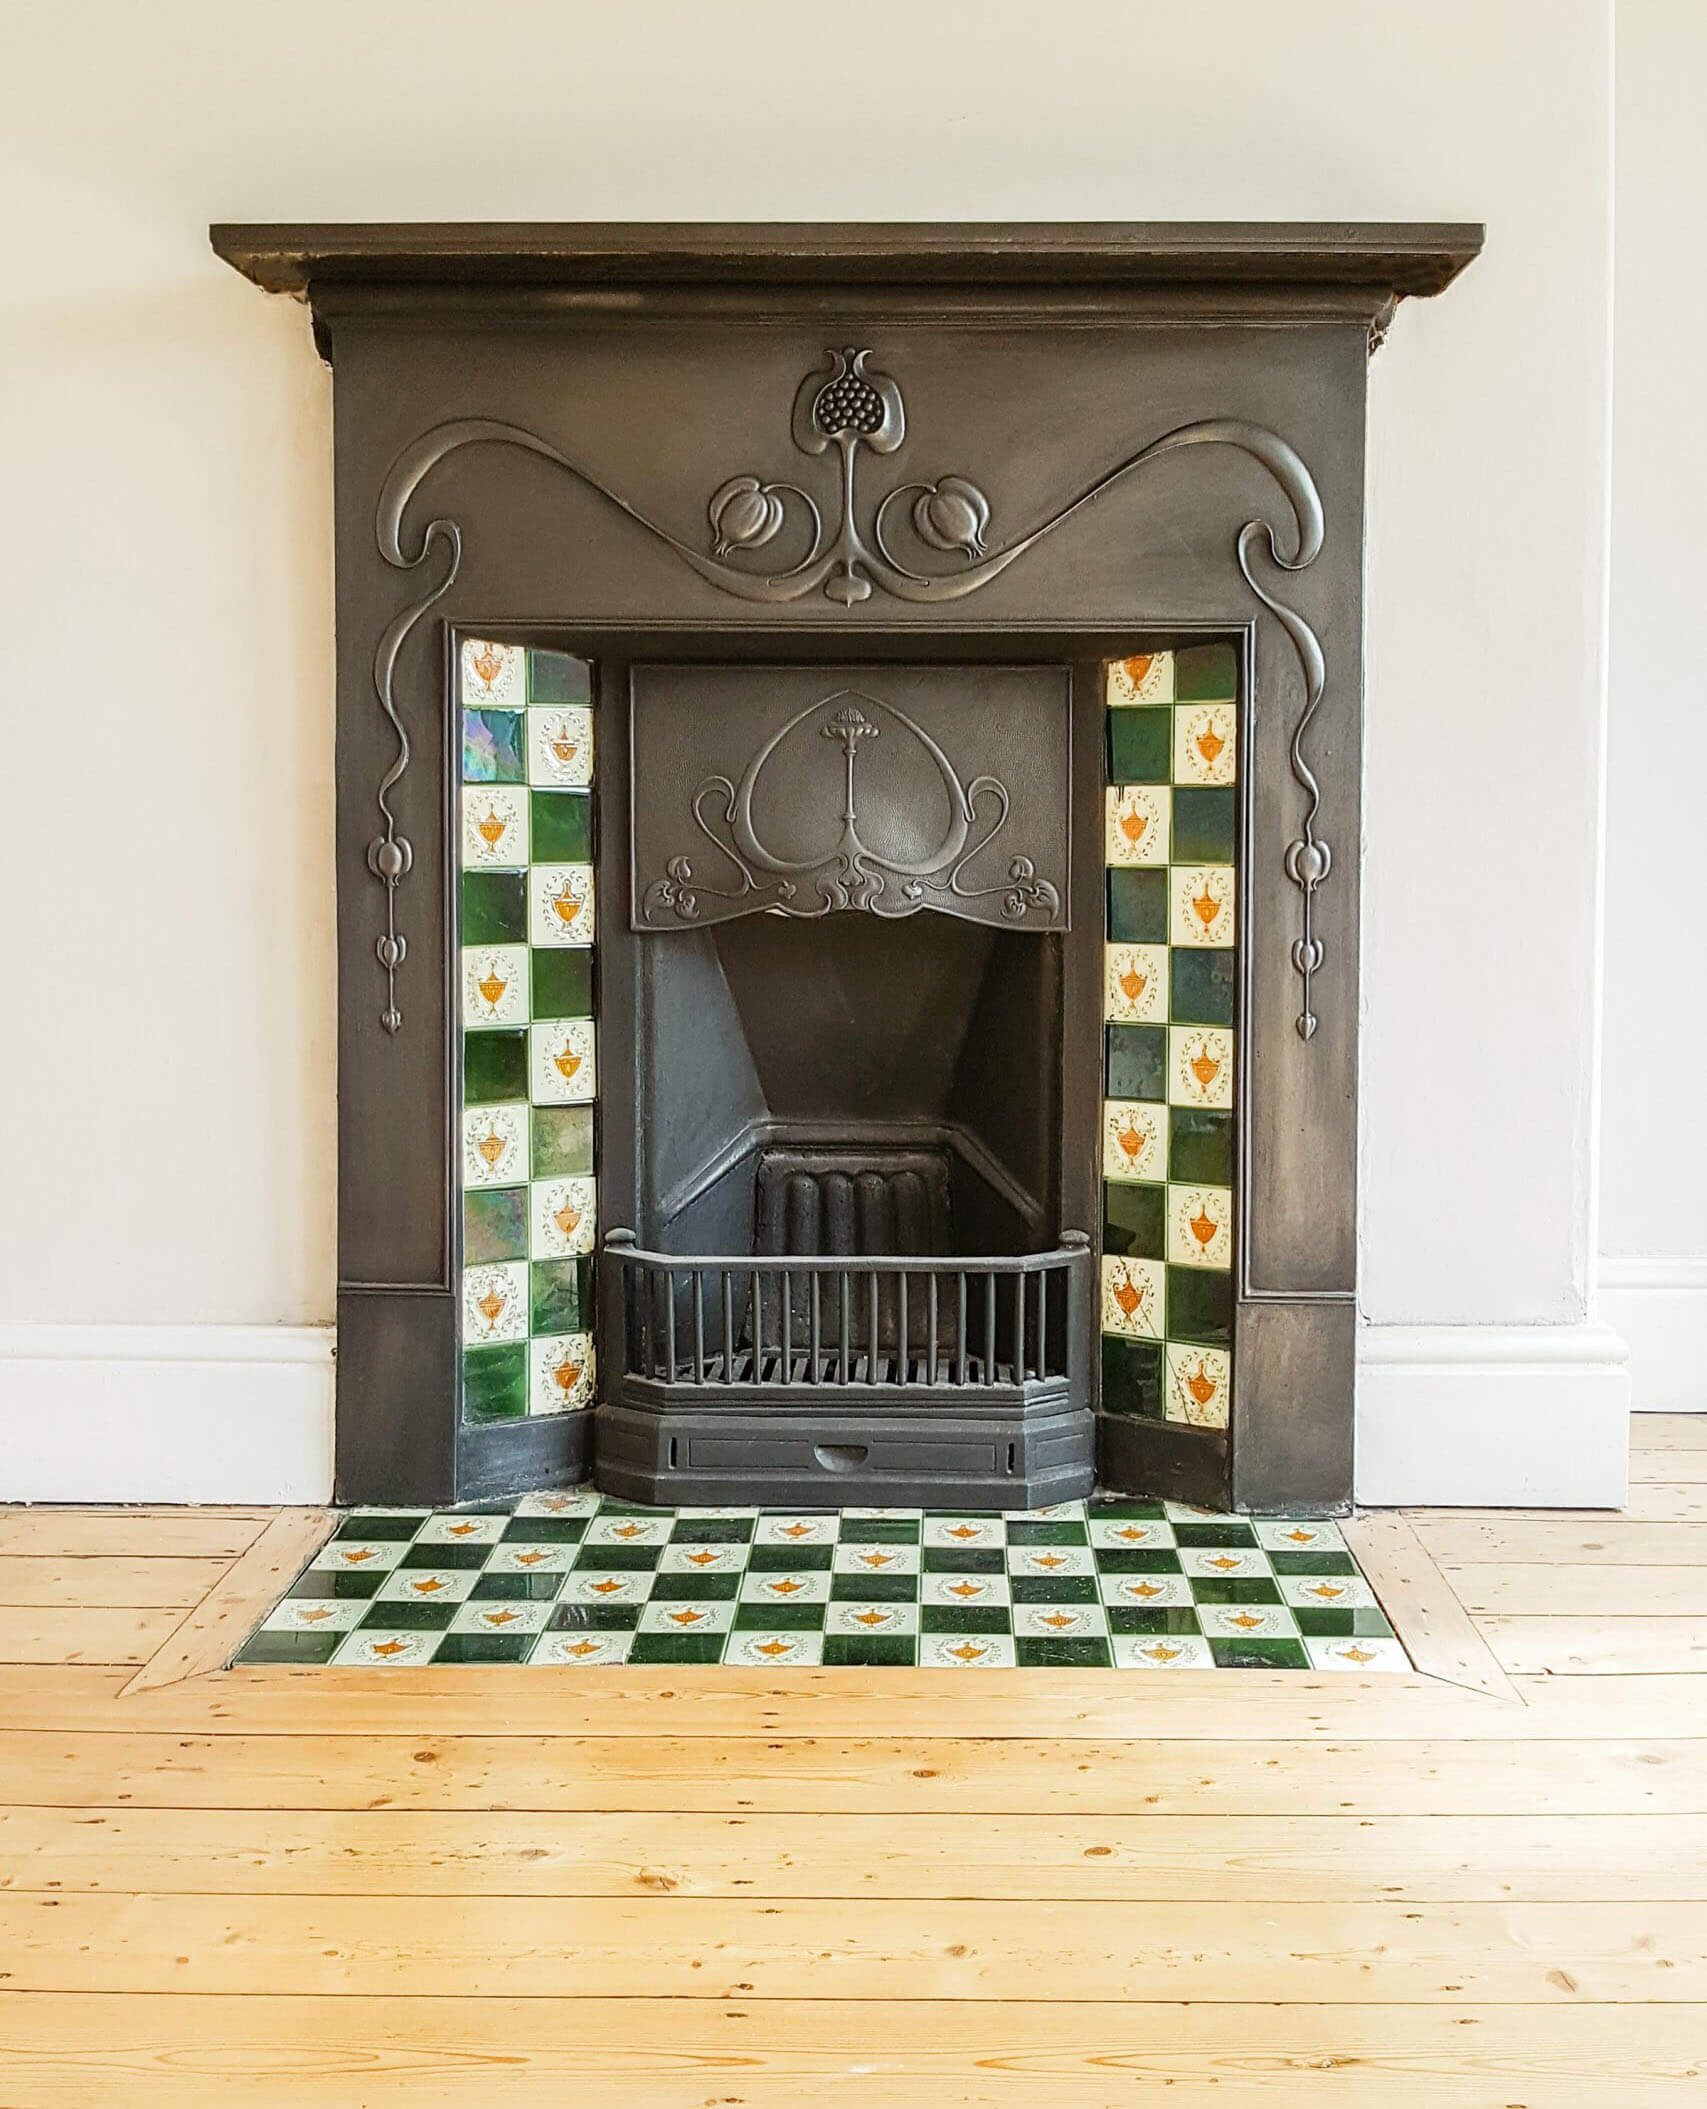 Tiled hearth and sides